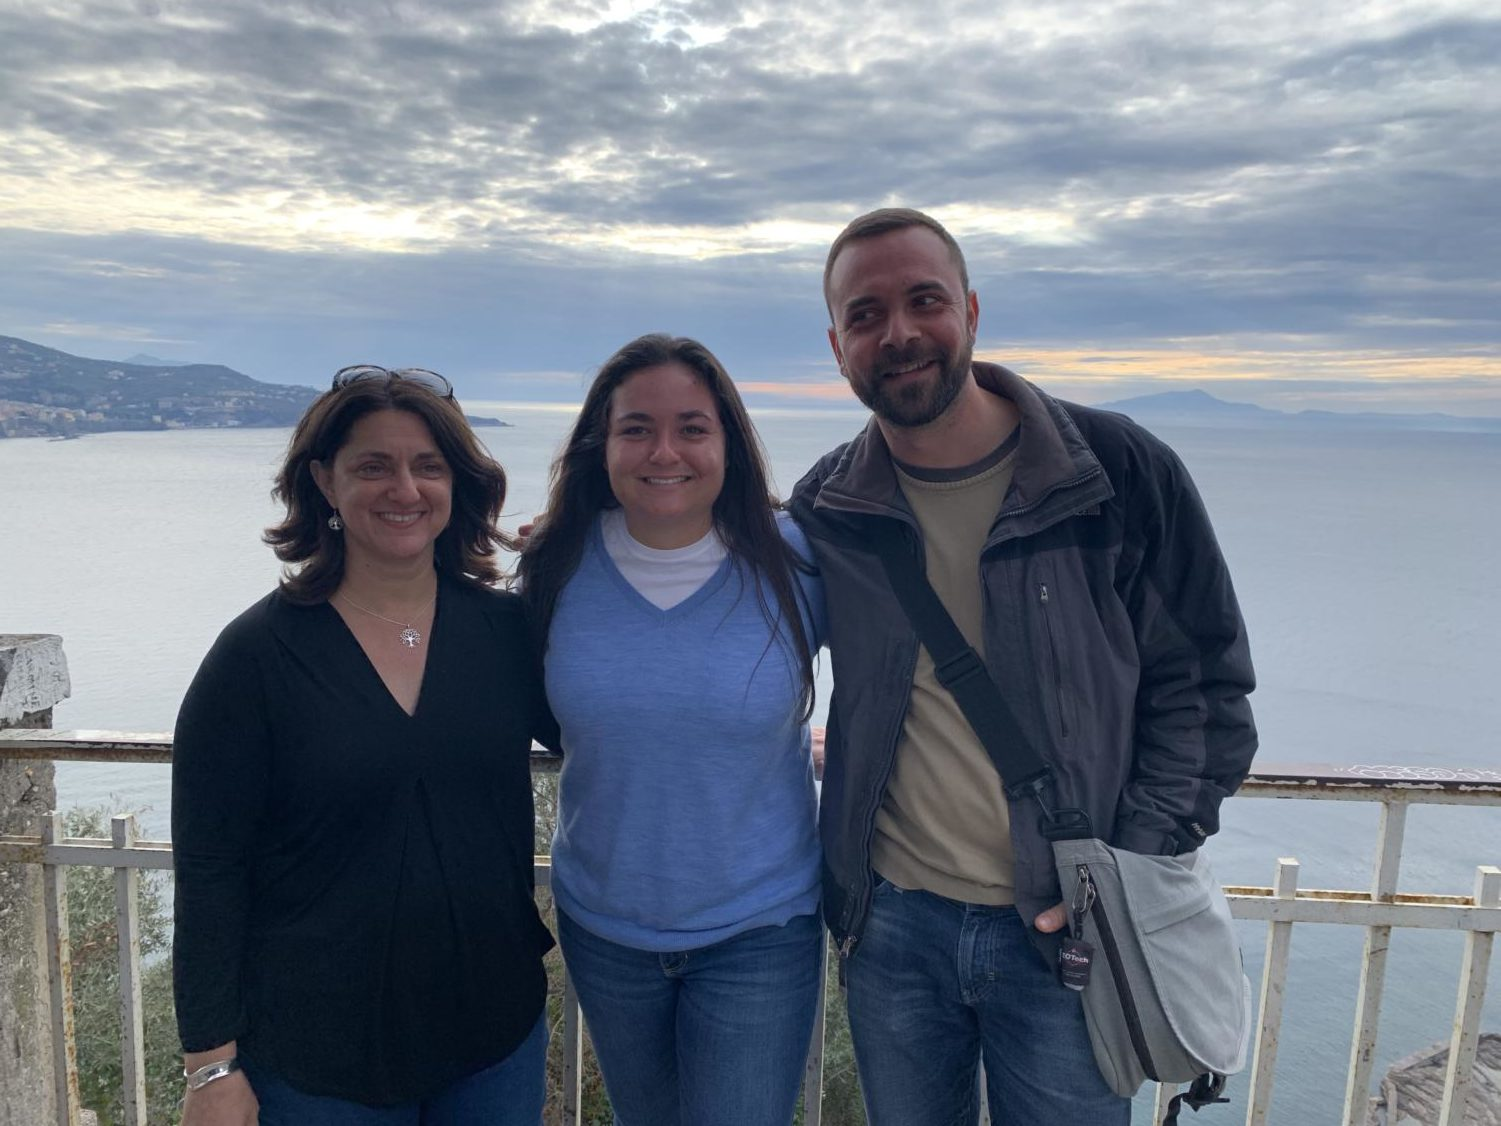 Shari Rodgers, Isabelle Dewaele and group tour guide Tomasso in Meta, Italy.